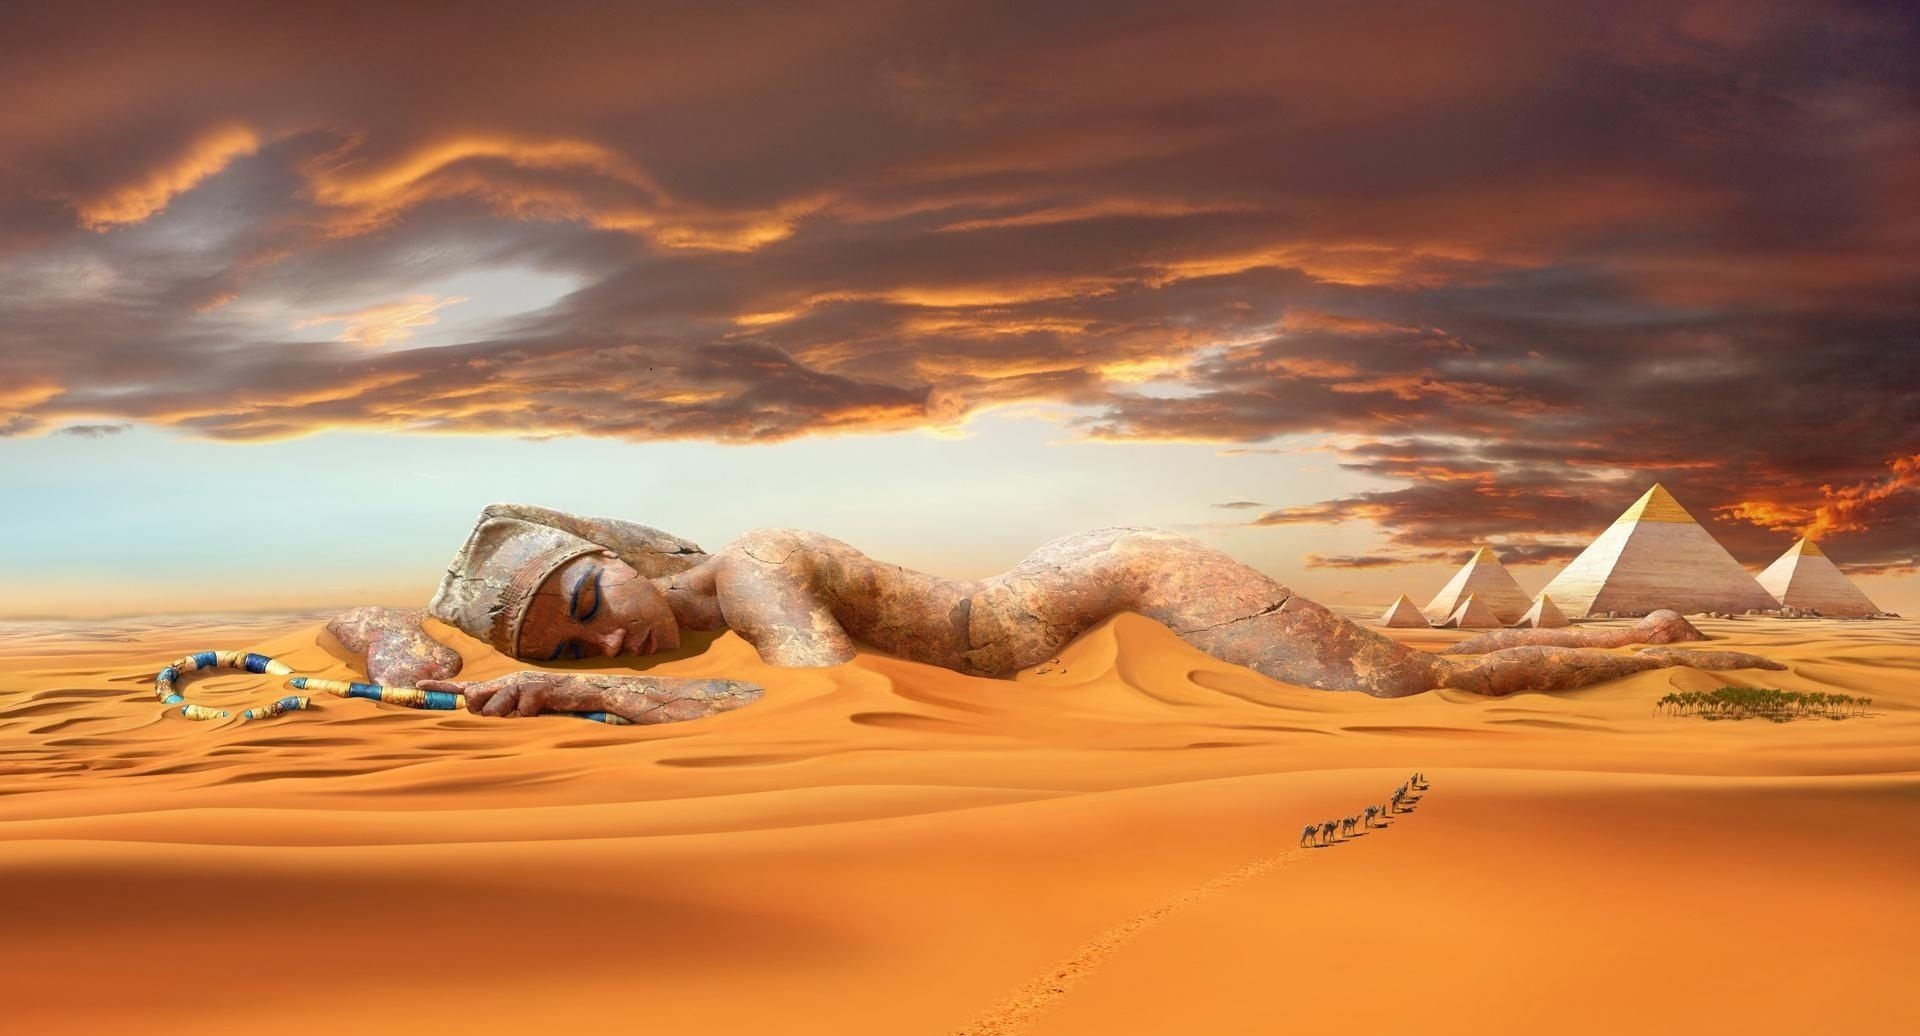 Gods of Egypt Wallpapers   HD Wallpapers Backgrounds of Your Choice 1920x1036